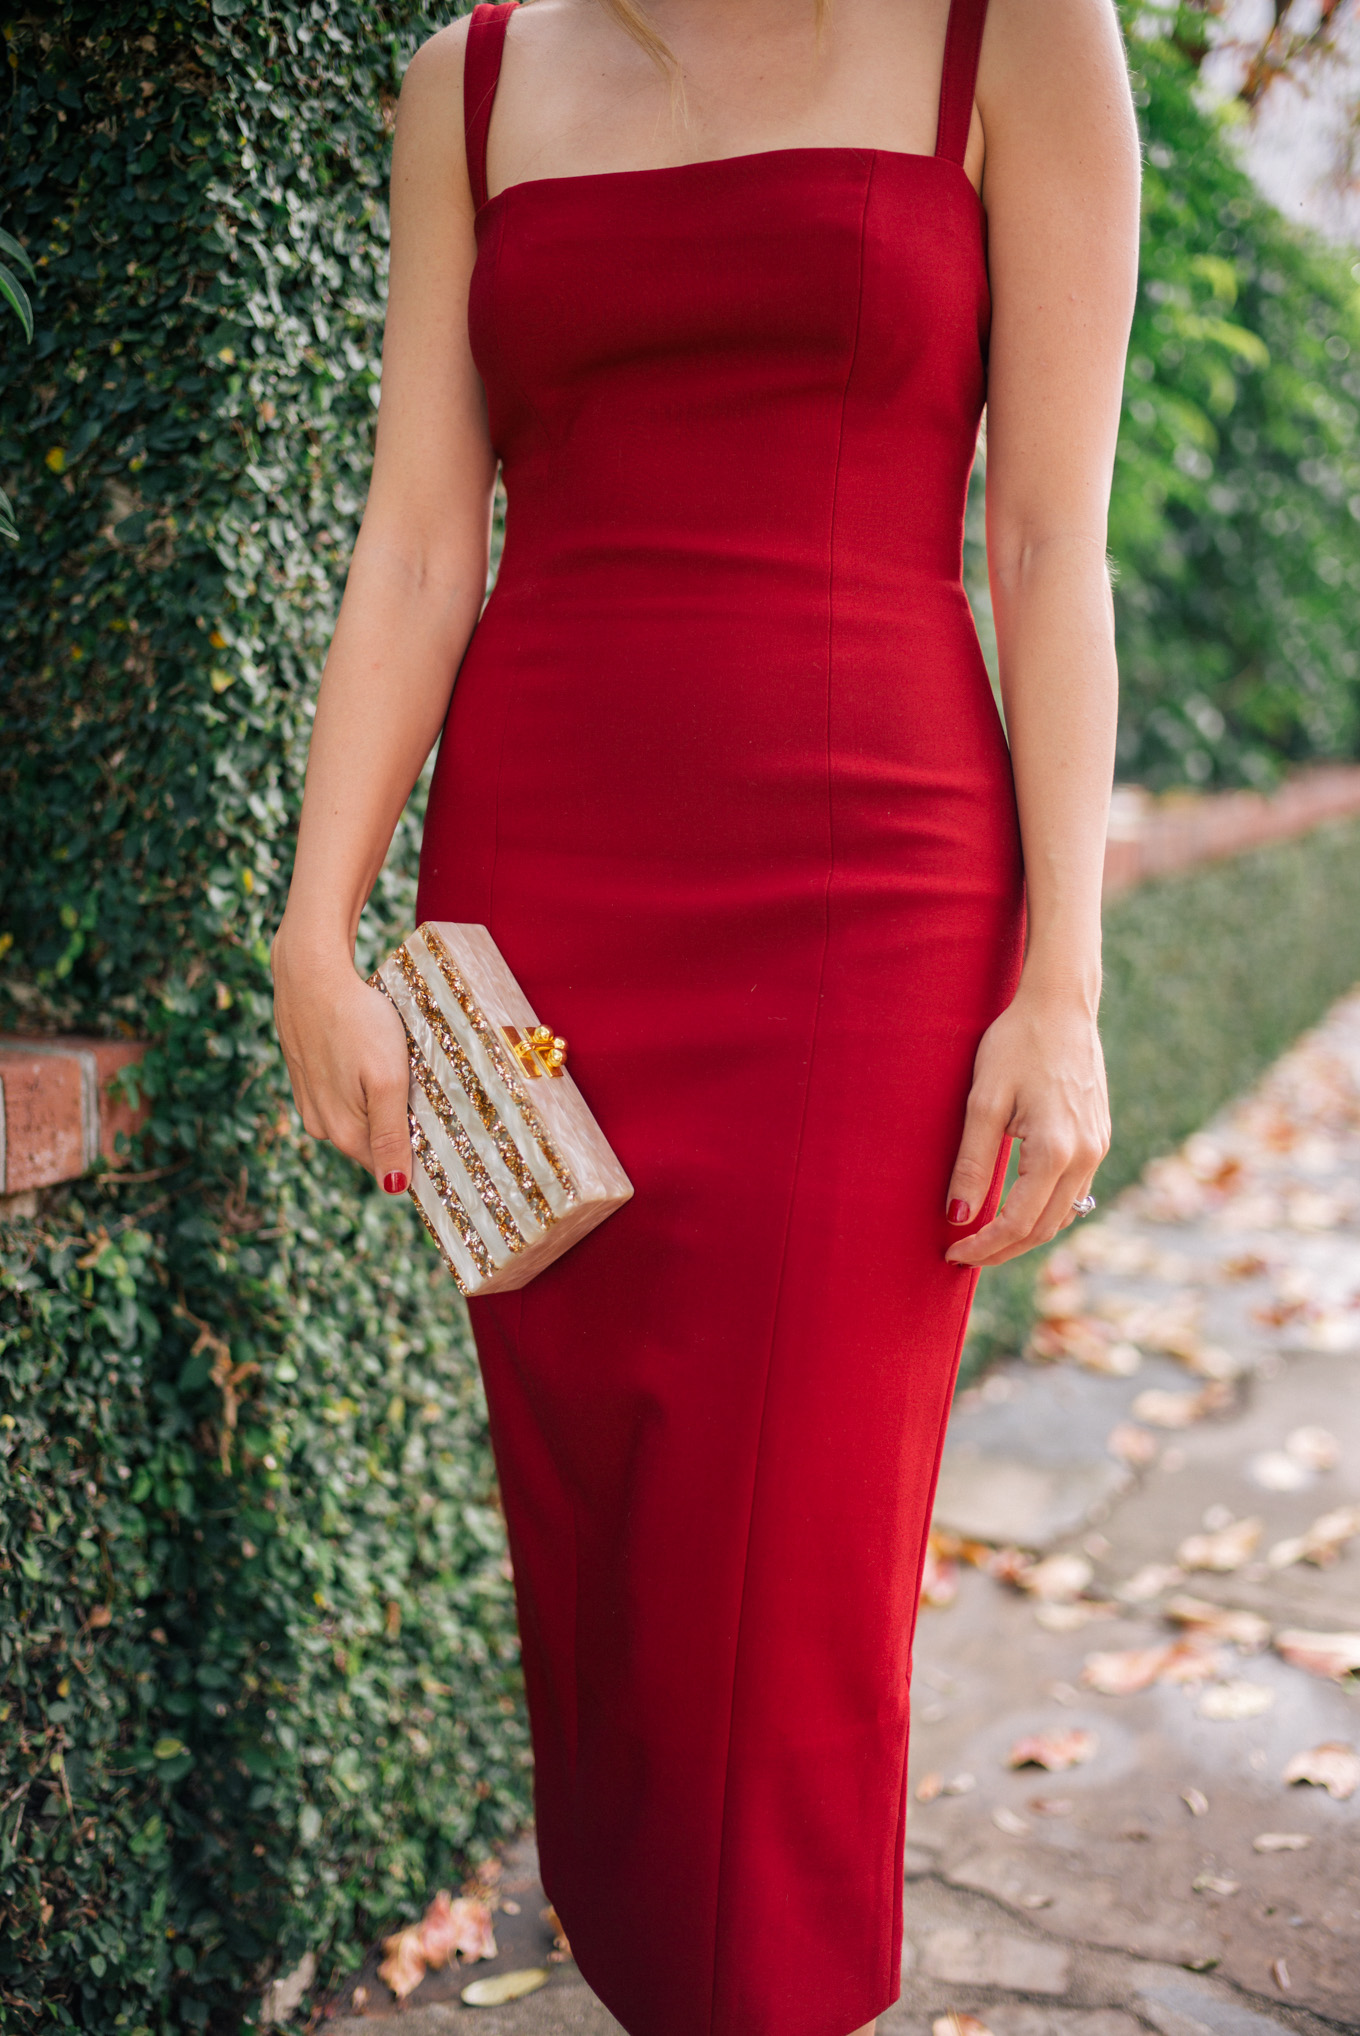 gmg-red-dress-holiday-1000203